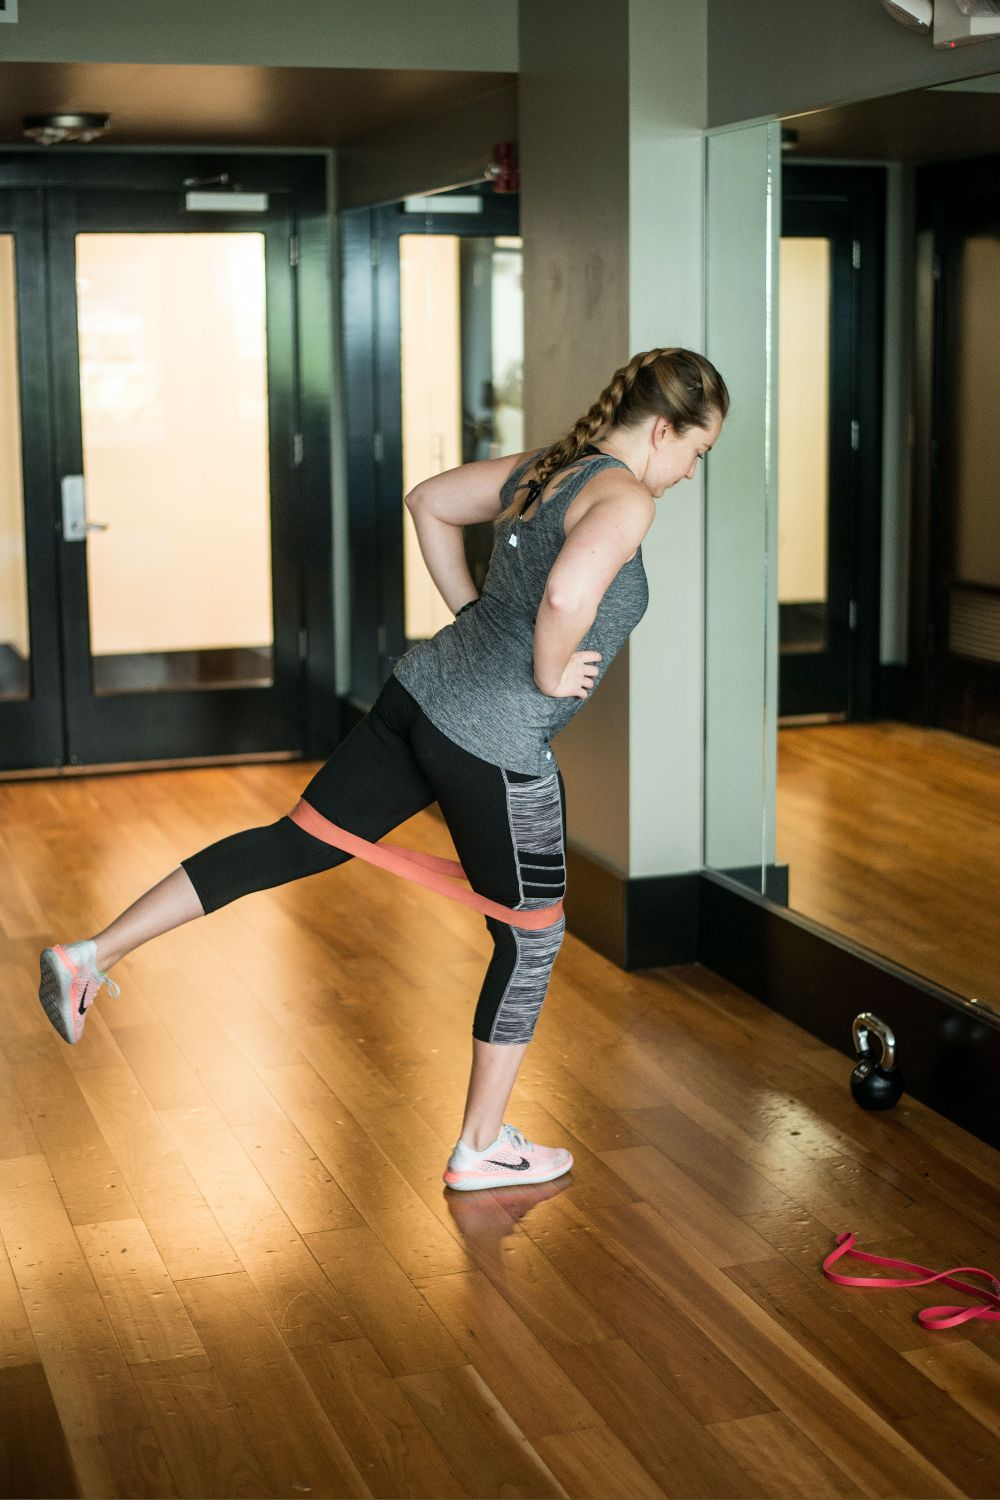 Looking for a quick routine to do yourself?  Exercises you can do at home, the office, or on vacation?  Try this great full-body routine. -Michelle Grocke, Ph.D #stayingactive #workout #resistancebands #lccextension #buyeatlivebetter #homeworkout